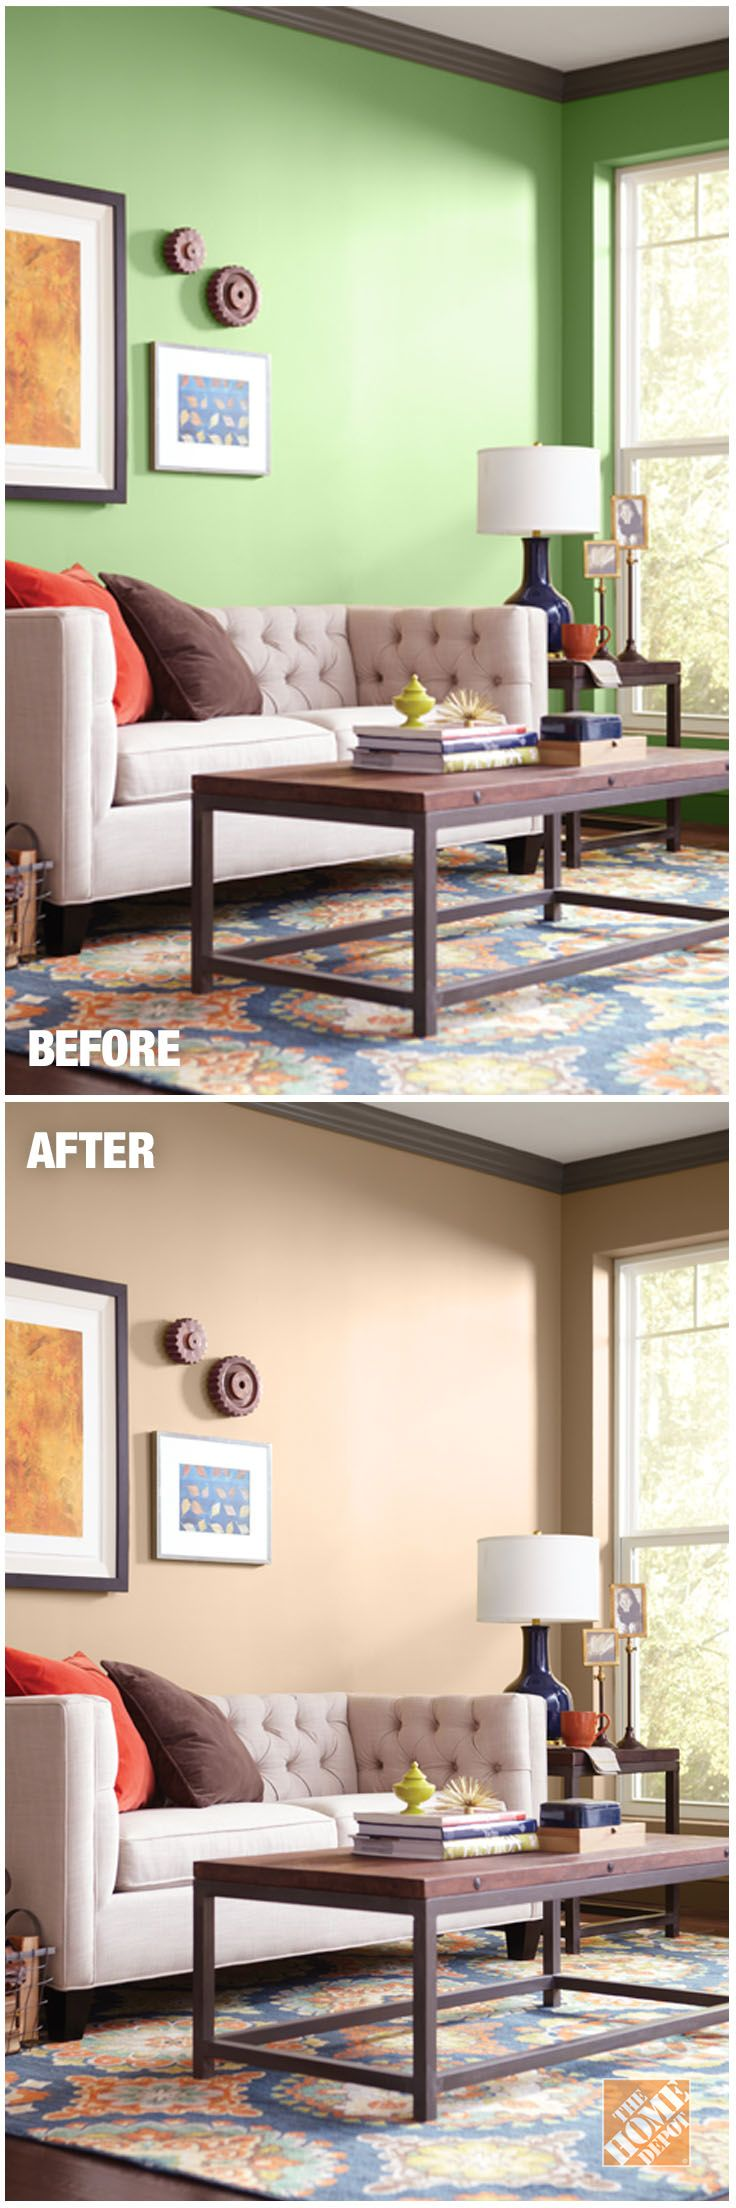 Home Depot Paint Colors Interior Extraordinary 379 Best All About Paint Images On Pinterest  Behr Paint . Review